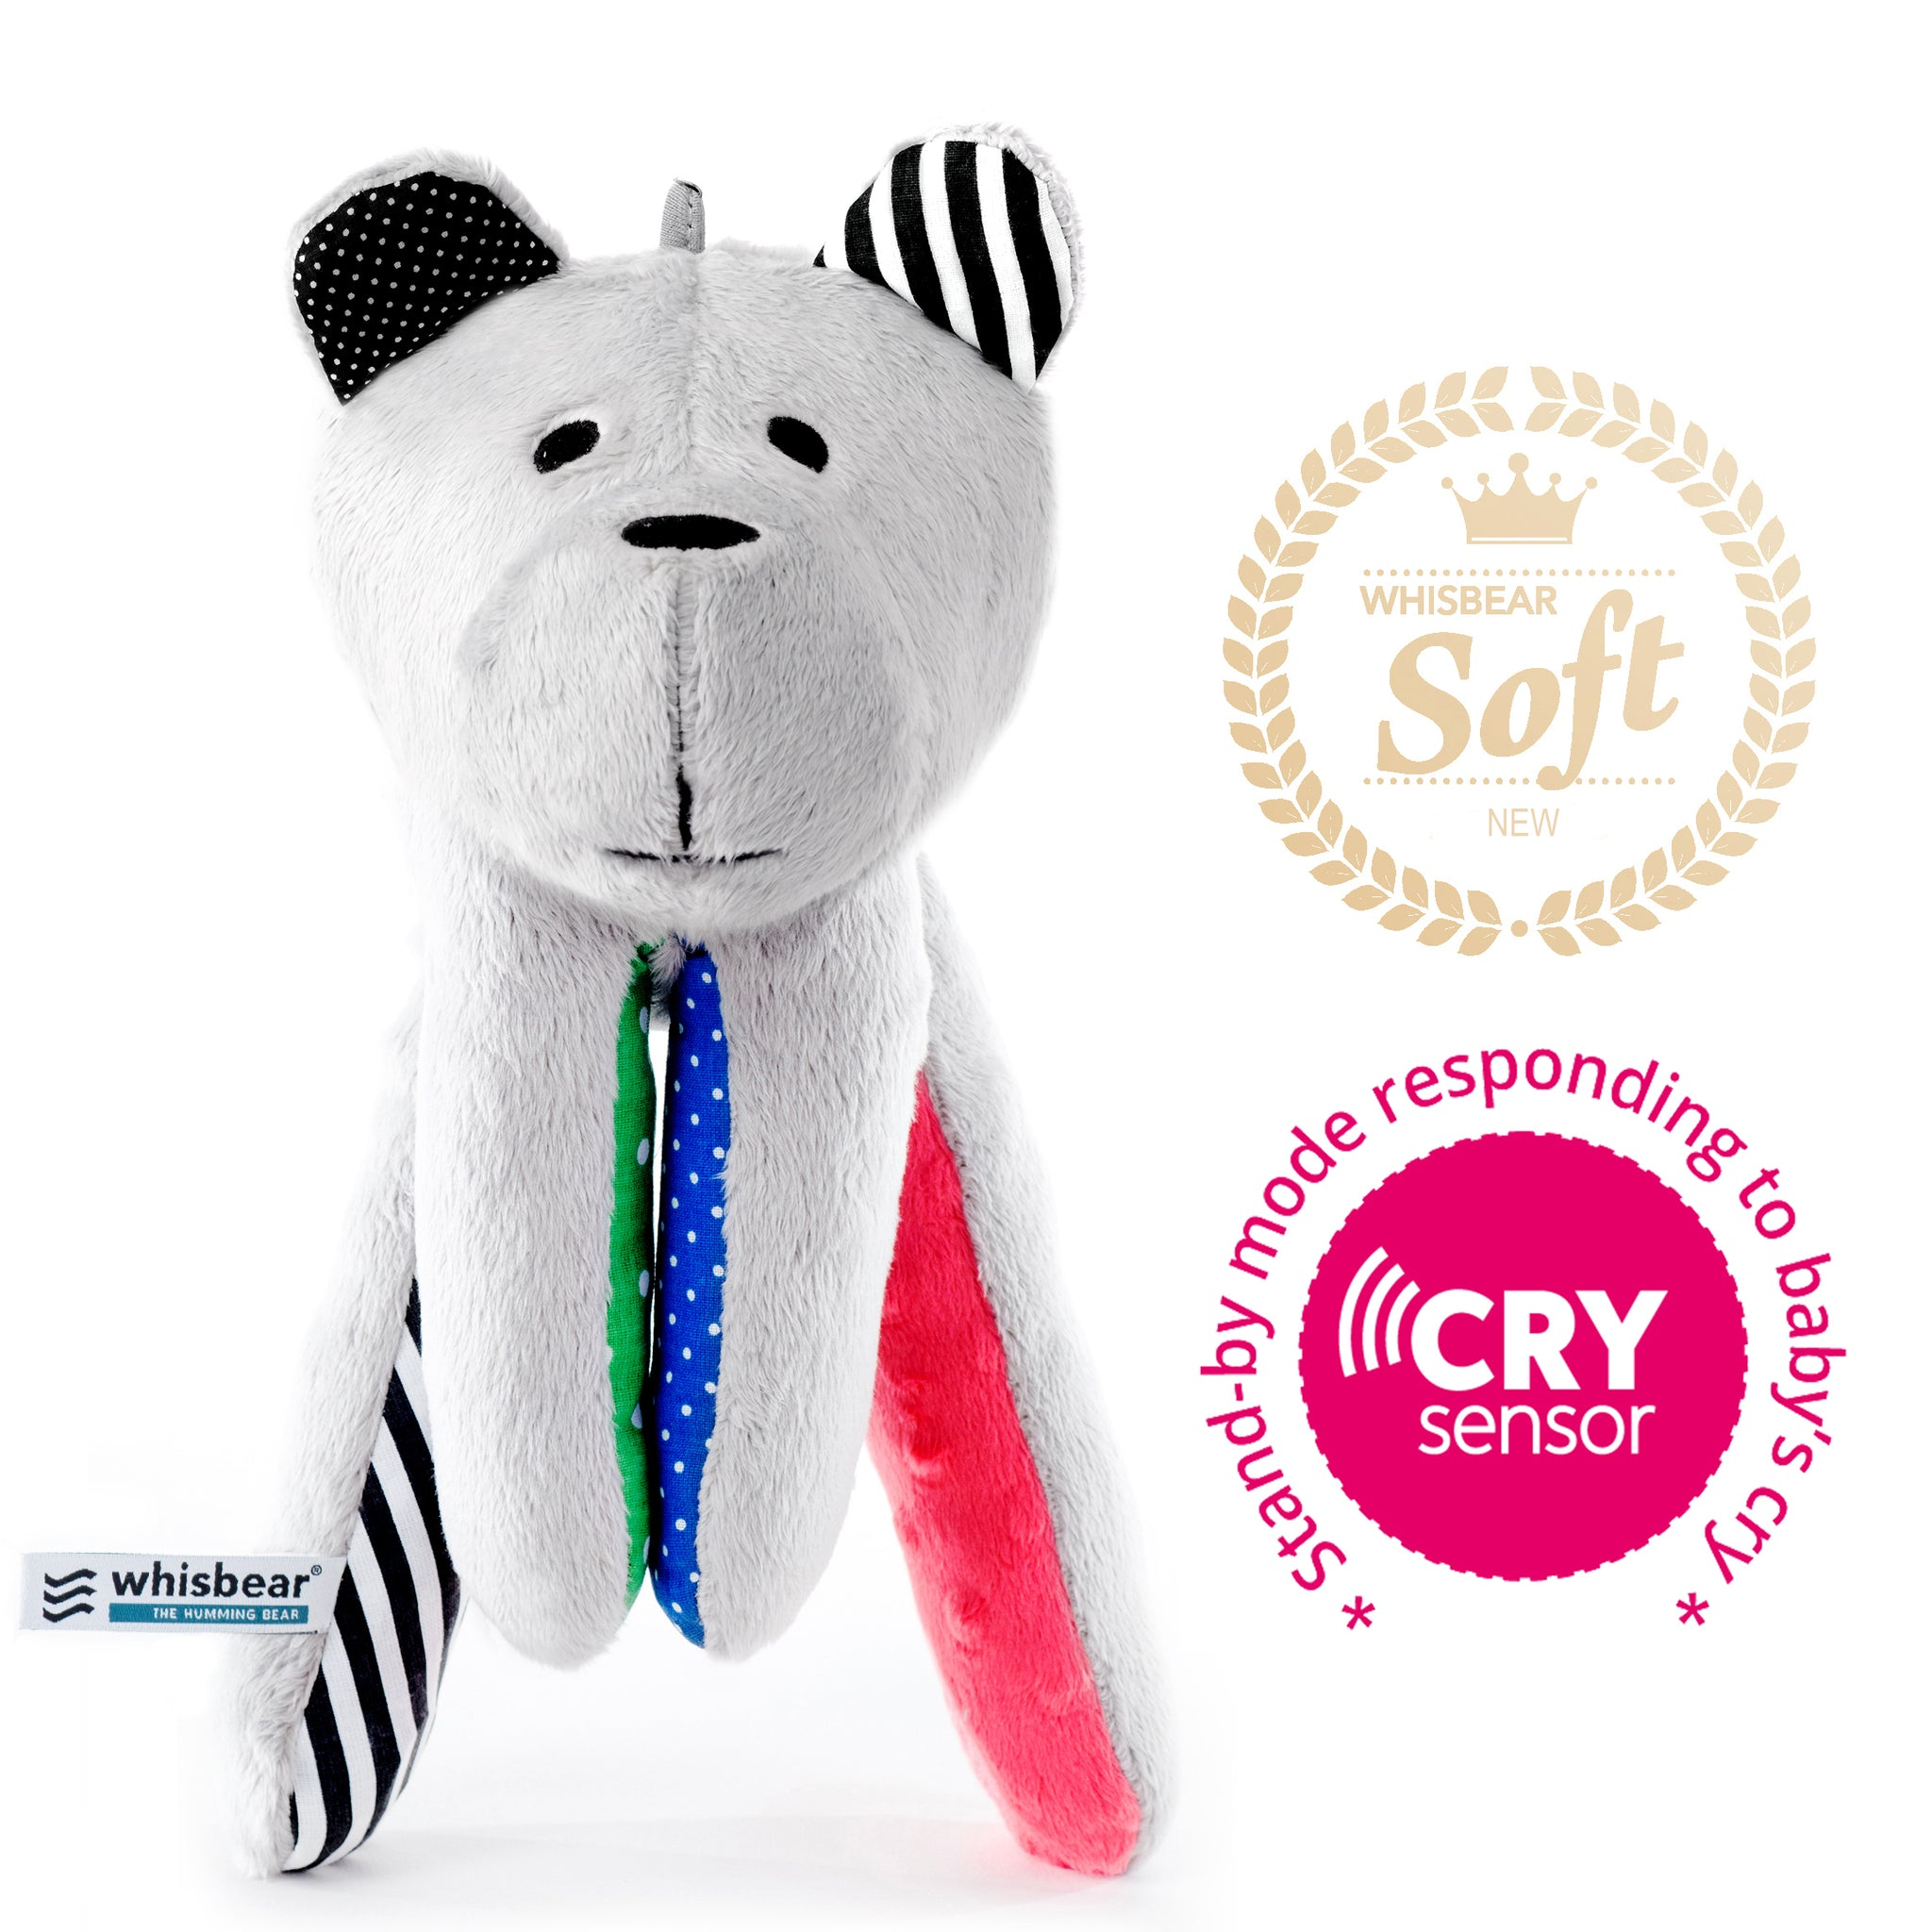 Whisbear - The Humming Bear with CRY sensor - Baby Prestige UK